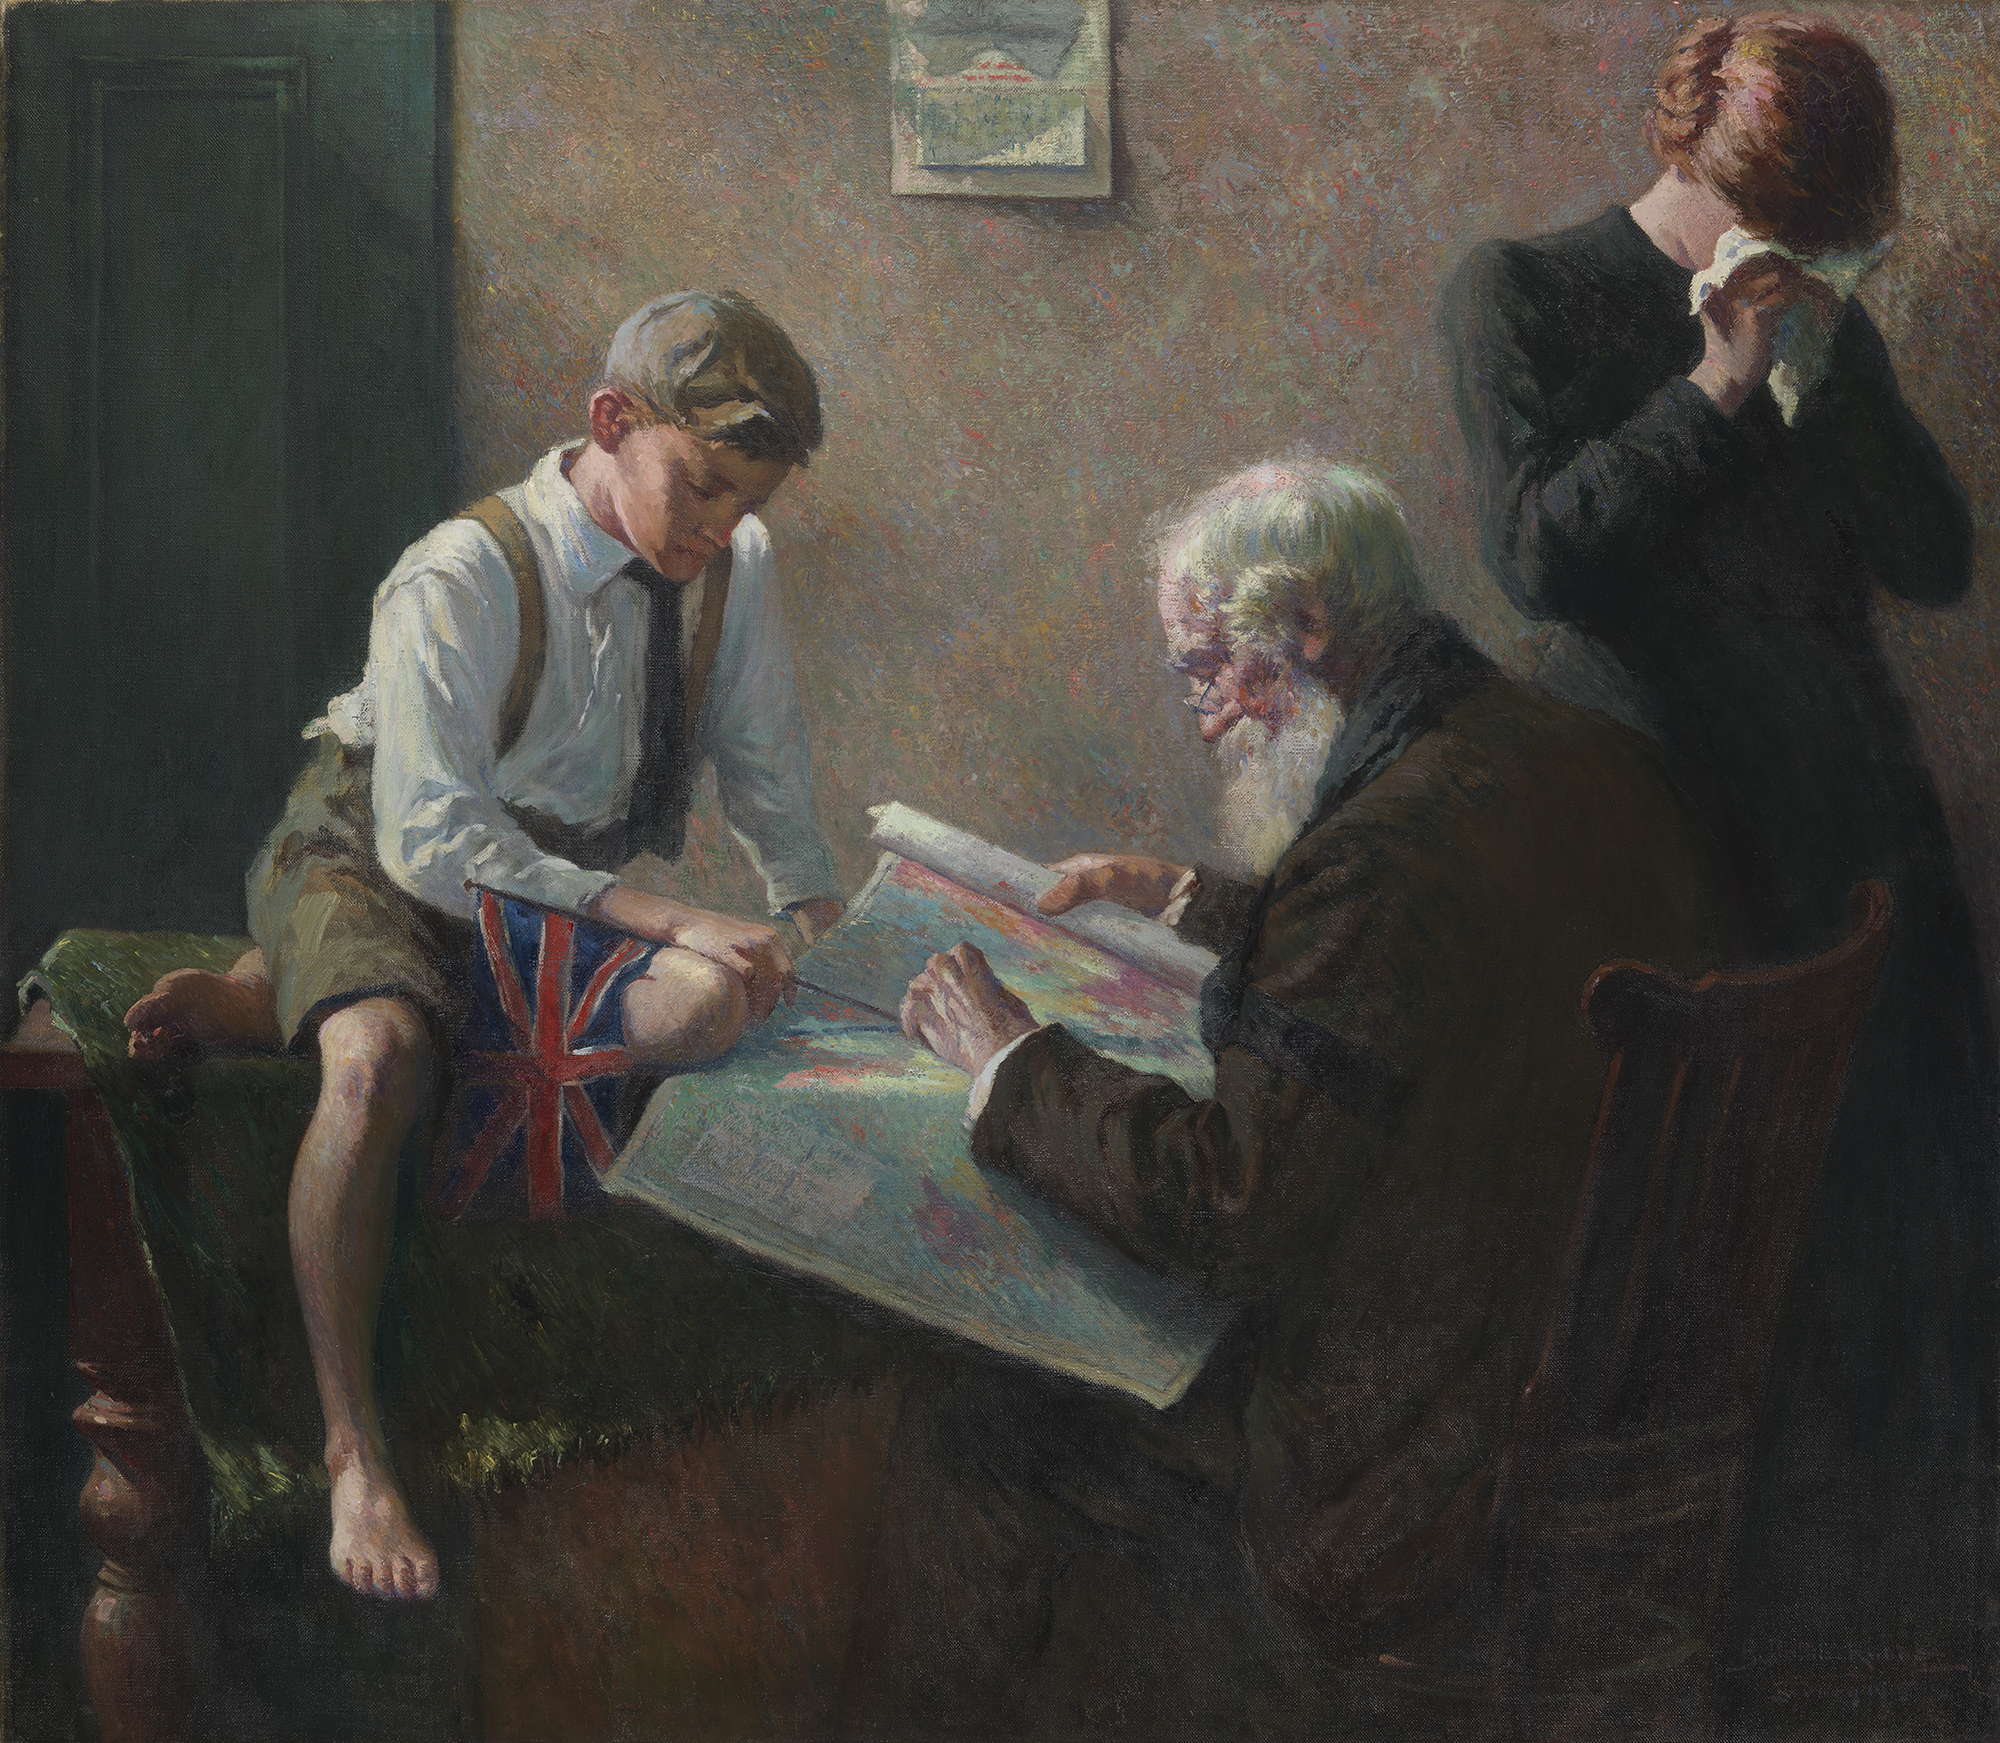 Oil painting showing old man and young boy looking at a map. A woman turns away from them weeping.